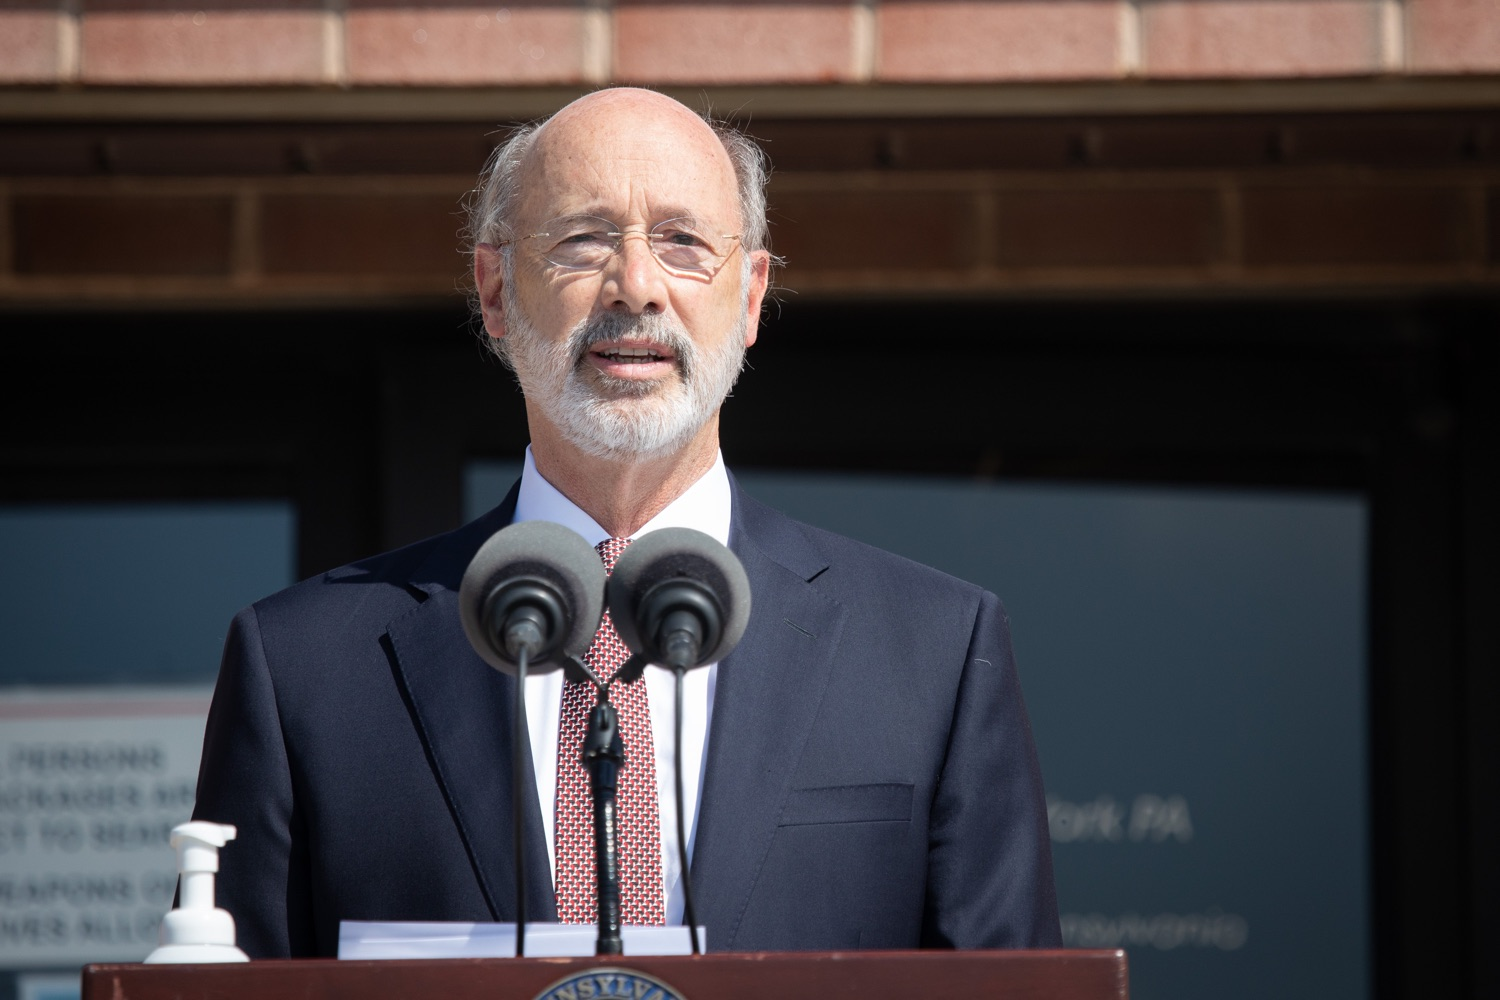 "<a href=""https://filesource.wostreaming.net/commonwealthofpa/photo/18184_gov_CareerLink01.JPG"" target=""_blank"">⇣ Download Photo<br></a>Pennsylvania governor Tom Wolf speaking at the event.  Governor Tom Wolf today visited the PA CareerLink York County to highlight the virtual services available to people looking for work and employers seeking qualified candidates. The governor also urged Republicans in Congress to extend the Federal Pandemic Unemployment Compensation program that provides an extra $600 a week to people receiving unemployment compensation. The federal program ended July 25.  Harrisburg, PA  July 28, 2020"